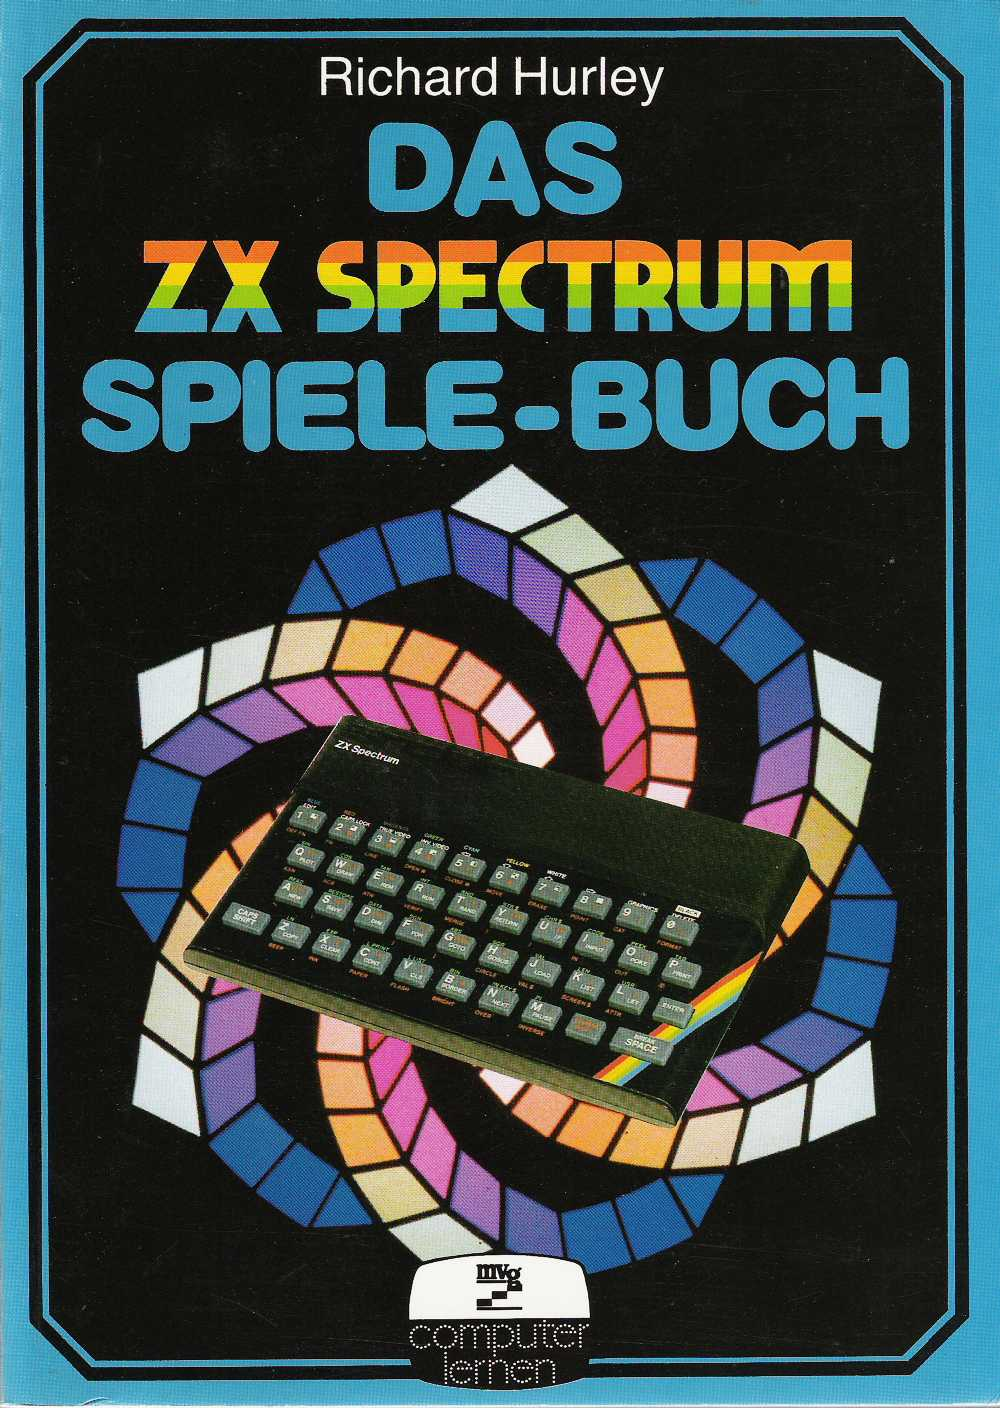 15 Graphic Games for the Spectrum screen